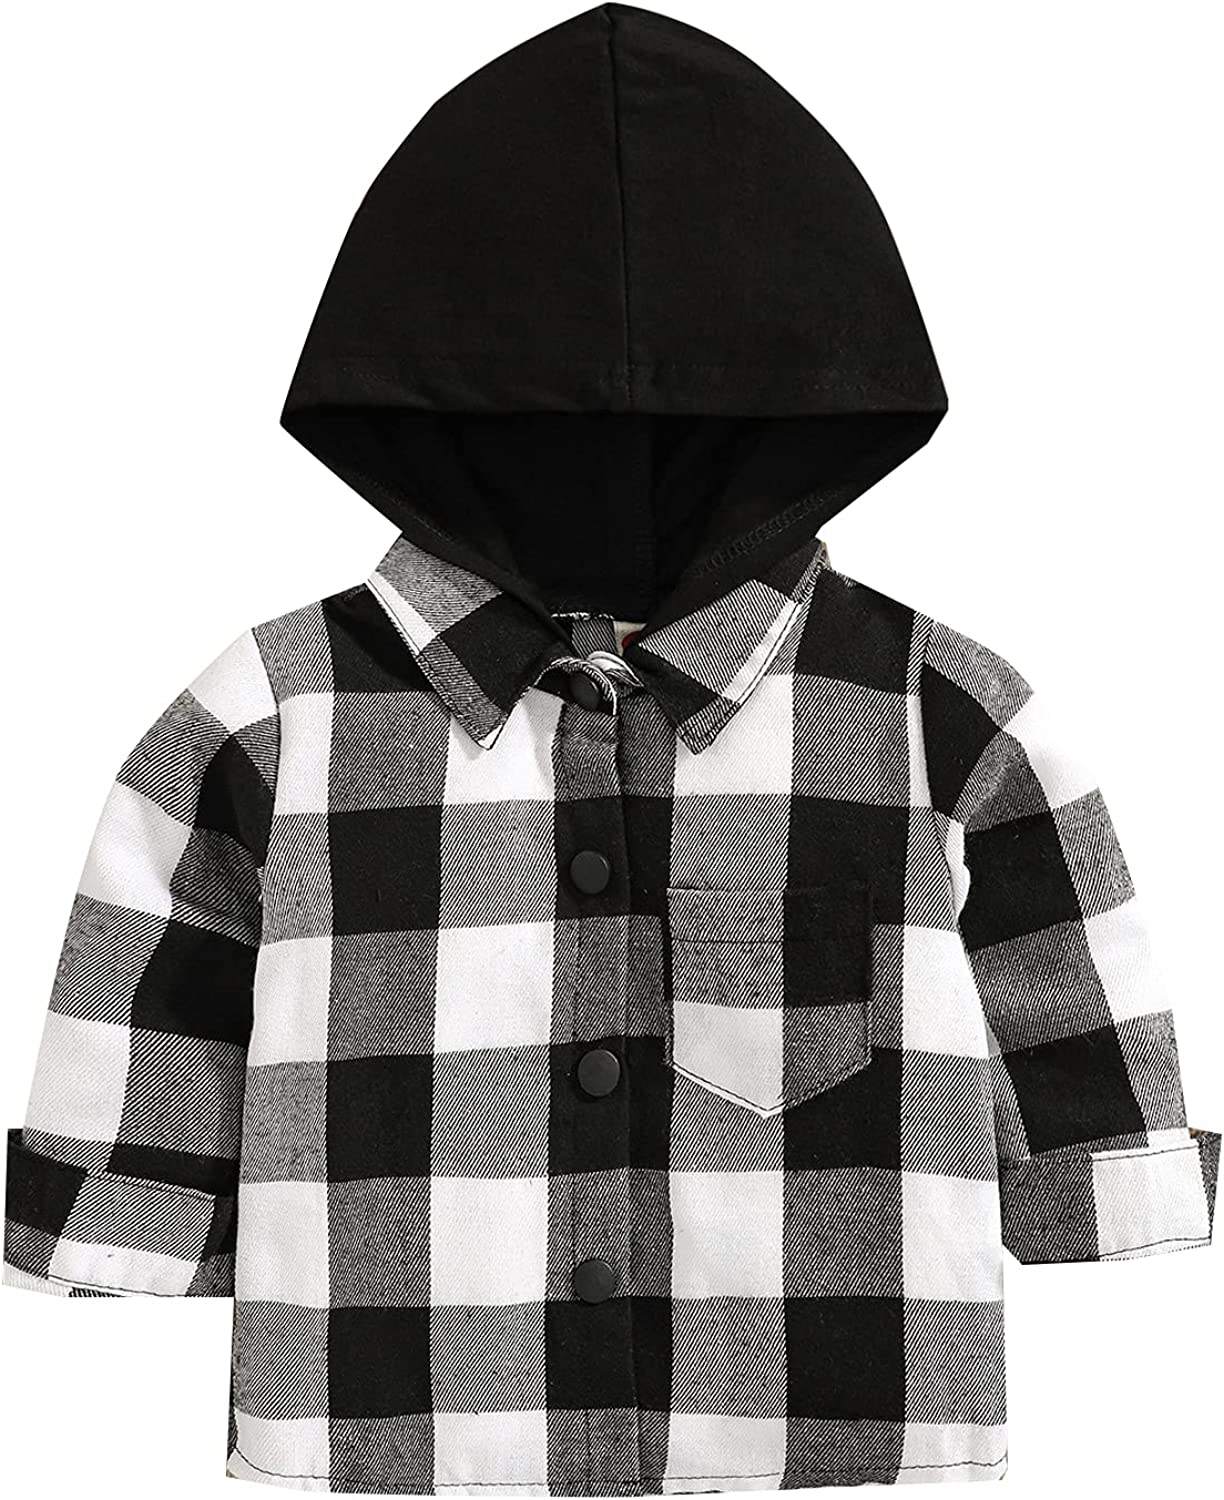 Toddler Baby Boys Girls Hooded Plaid Shirt Hooded Jacket Classic Button Down Shirt Kids Fall Winter Clothes Outfits